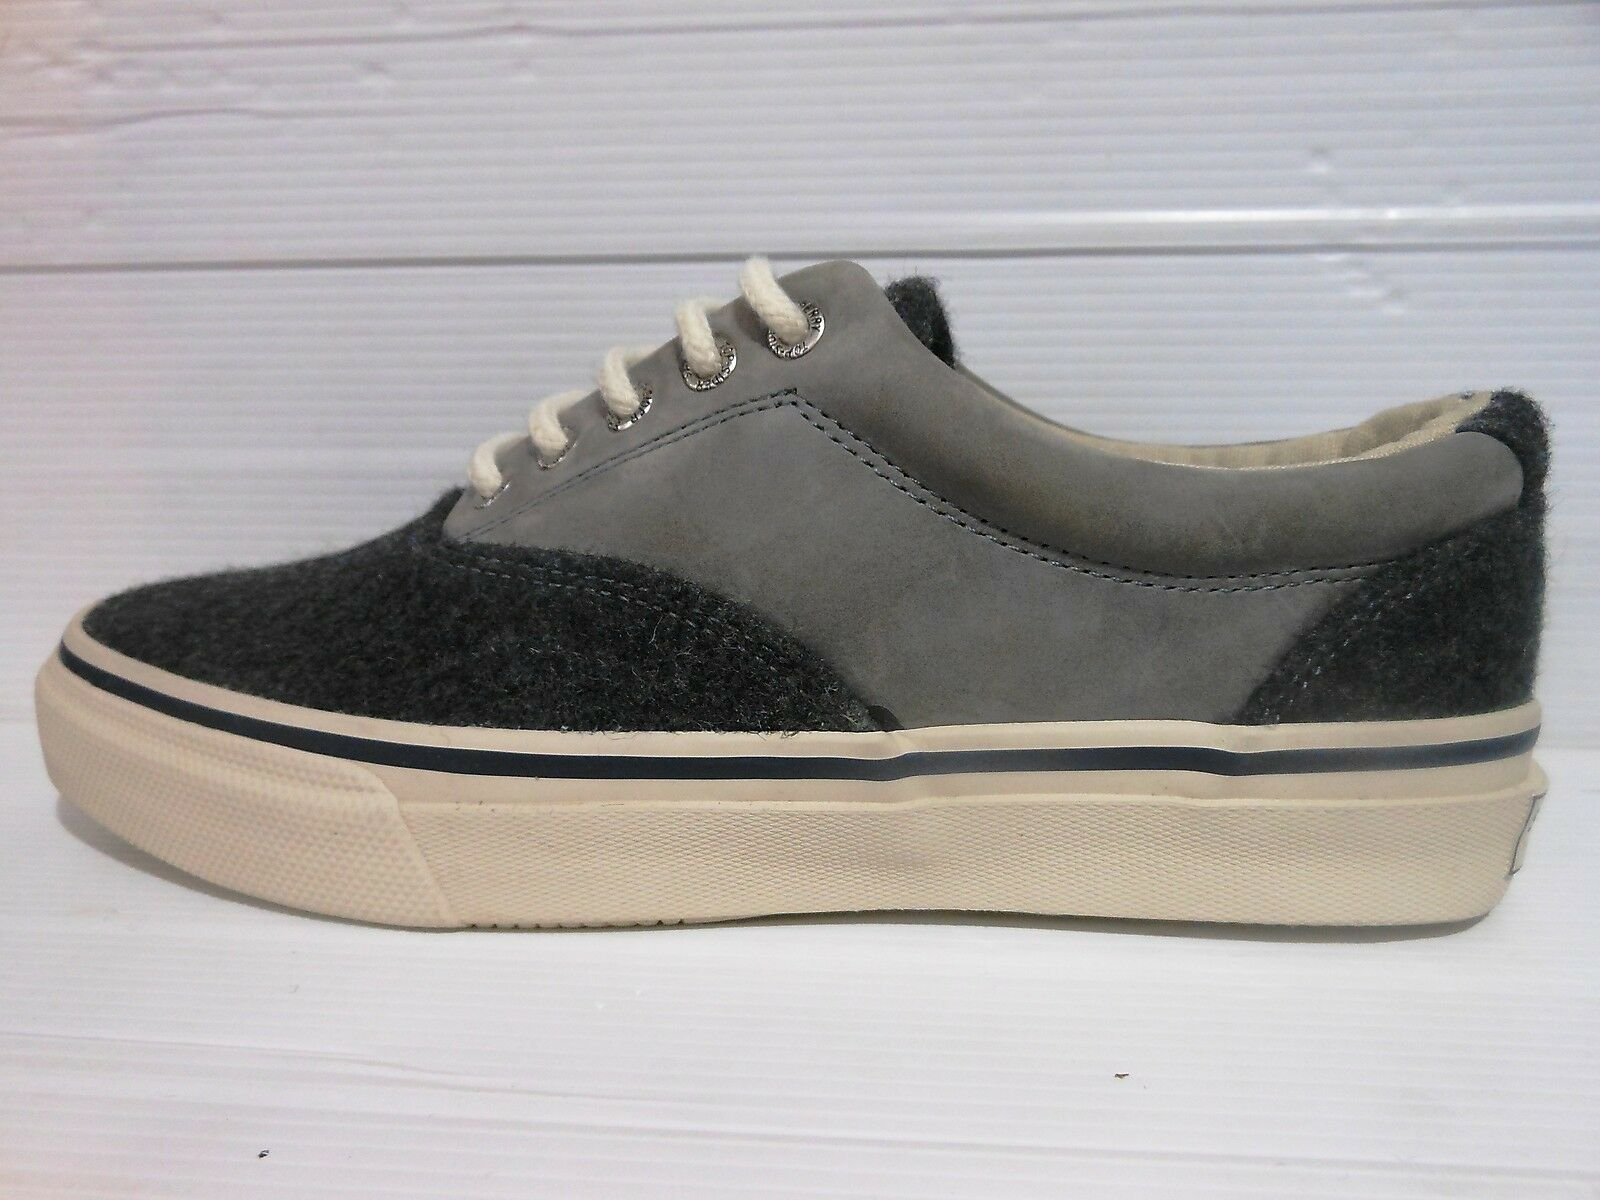 186 TOP-SIDER SPERRY COLORE SCARPA UOMO WOOL COLORE SPERRY GREY CODICE AW14M00591 7e4d93